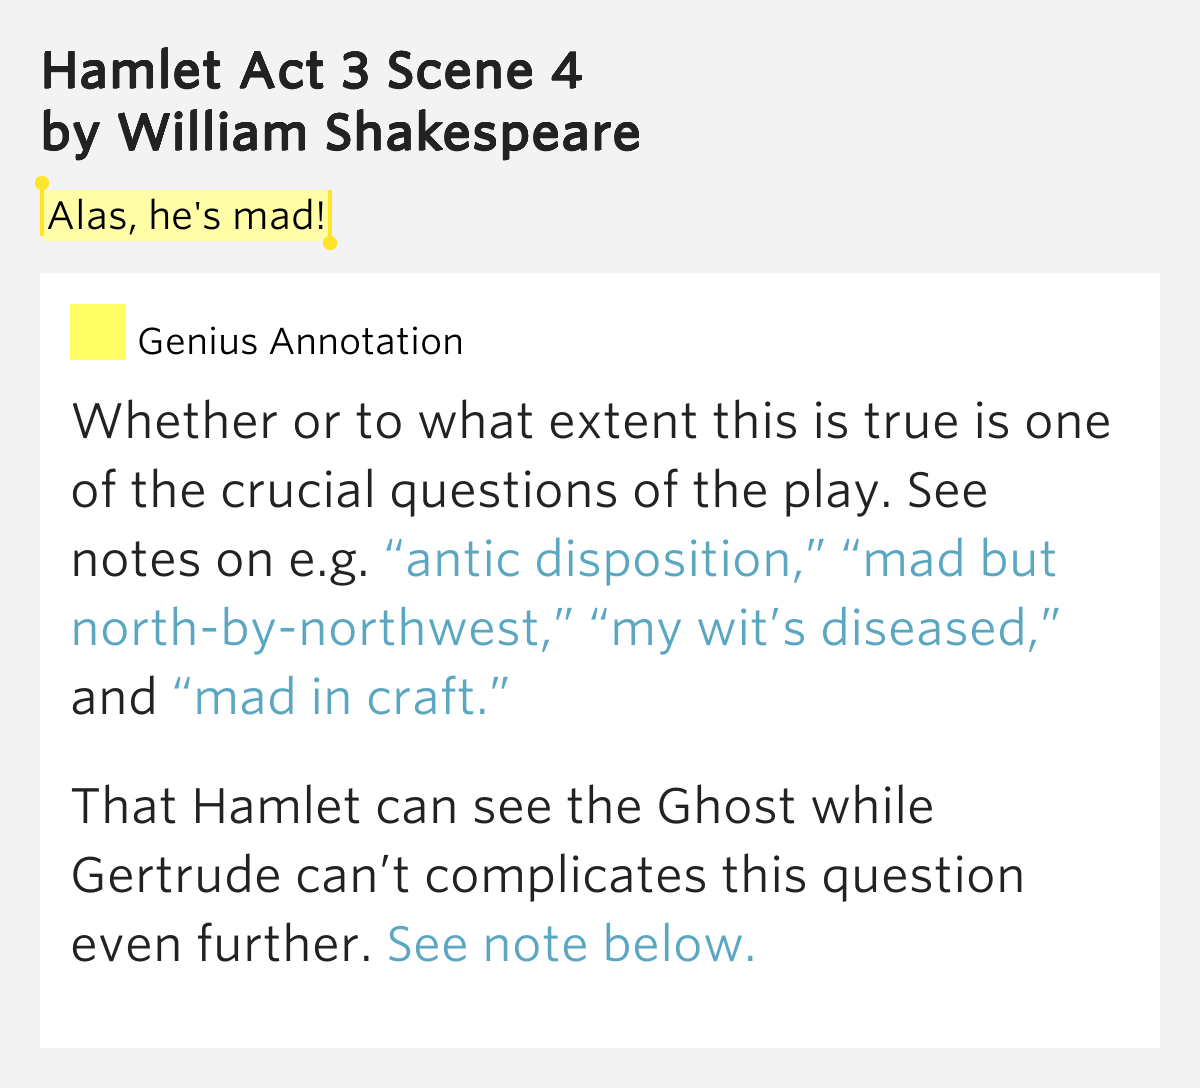 Alas, he's mad! – Hamlet Act 3 Scene 4 by William Shakespeare